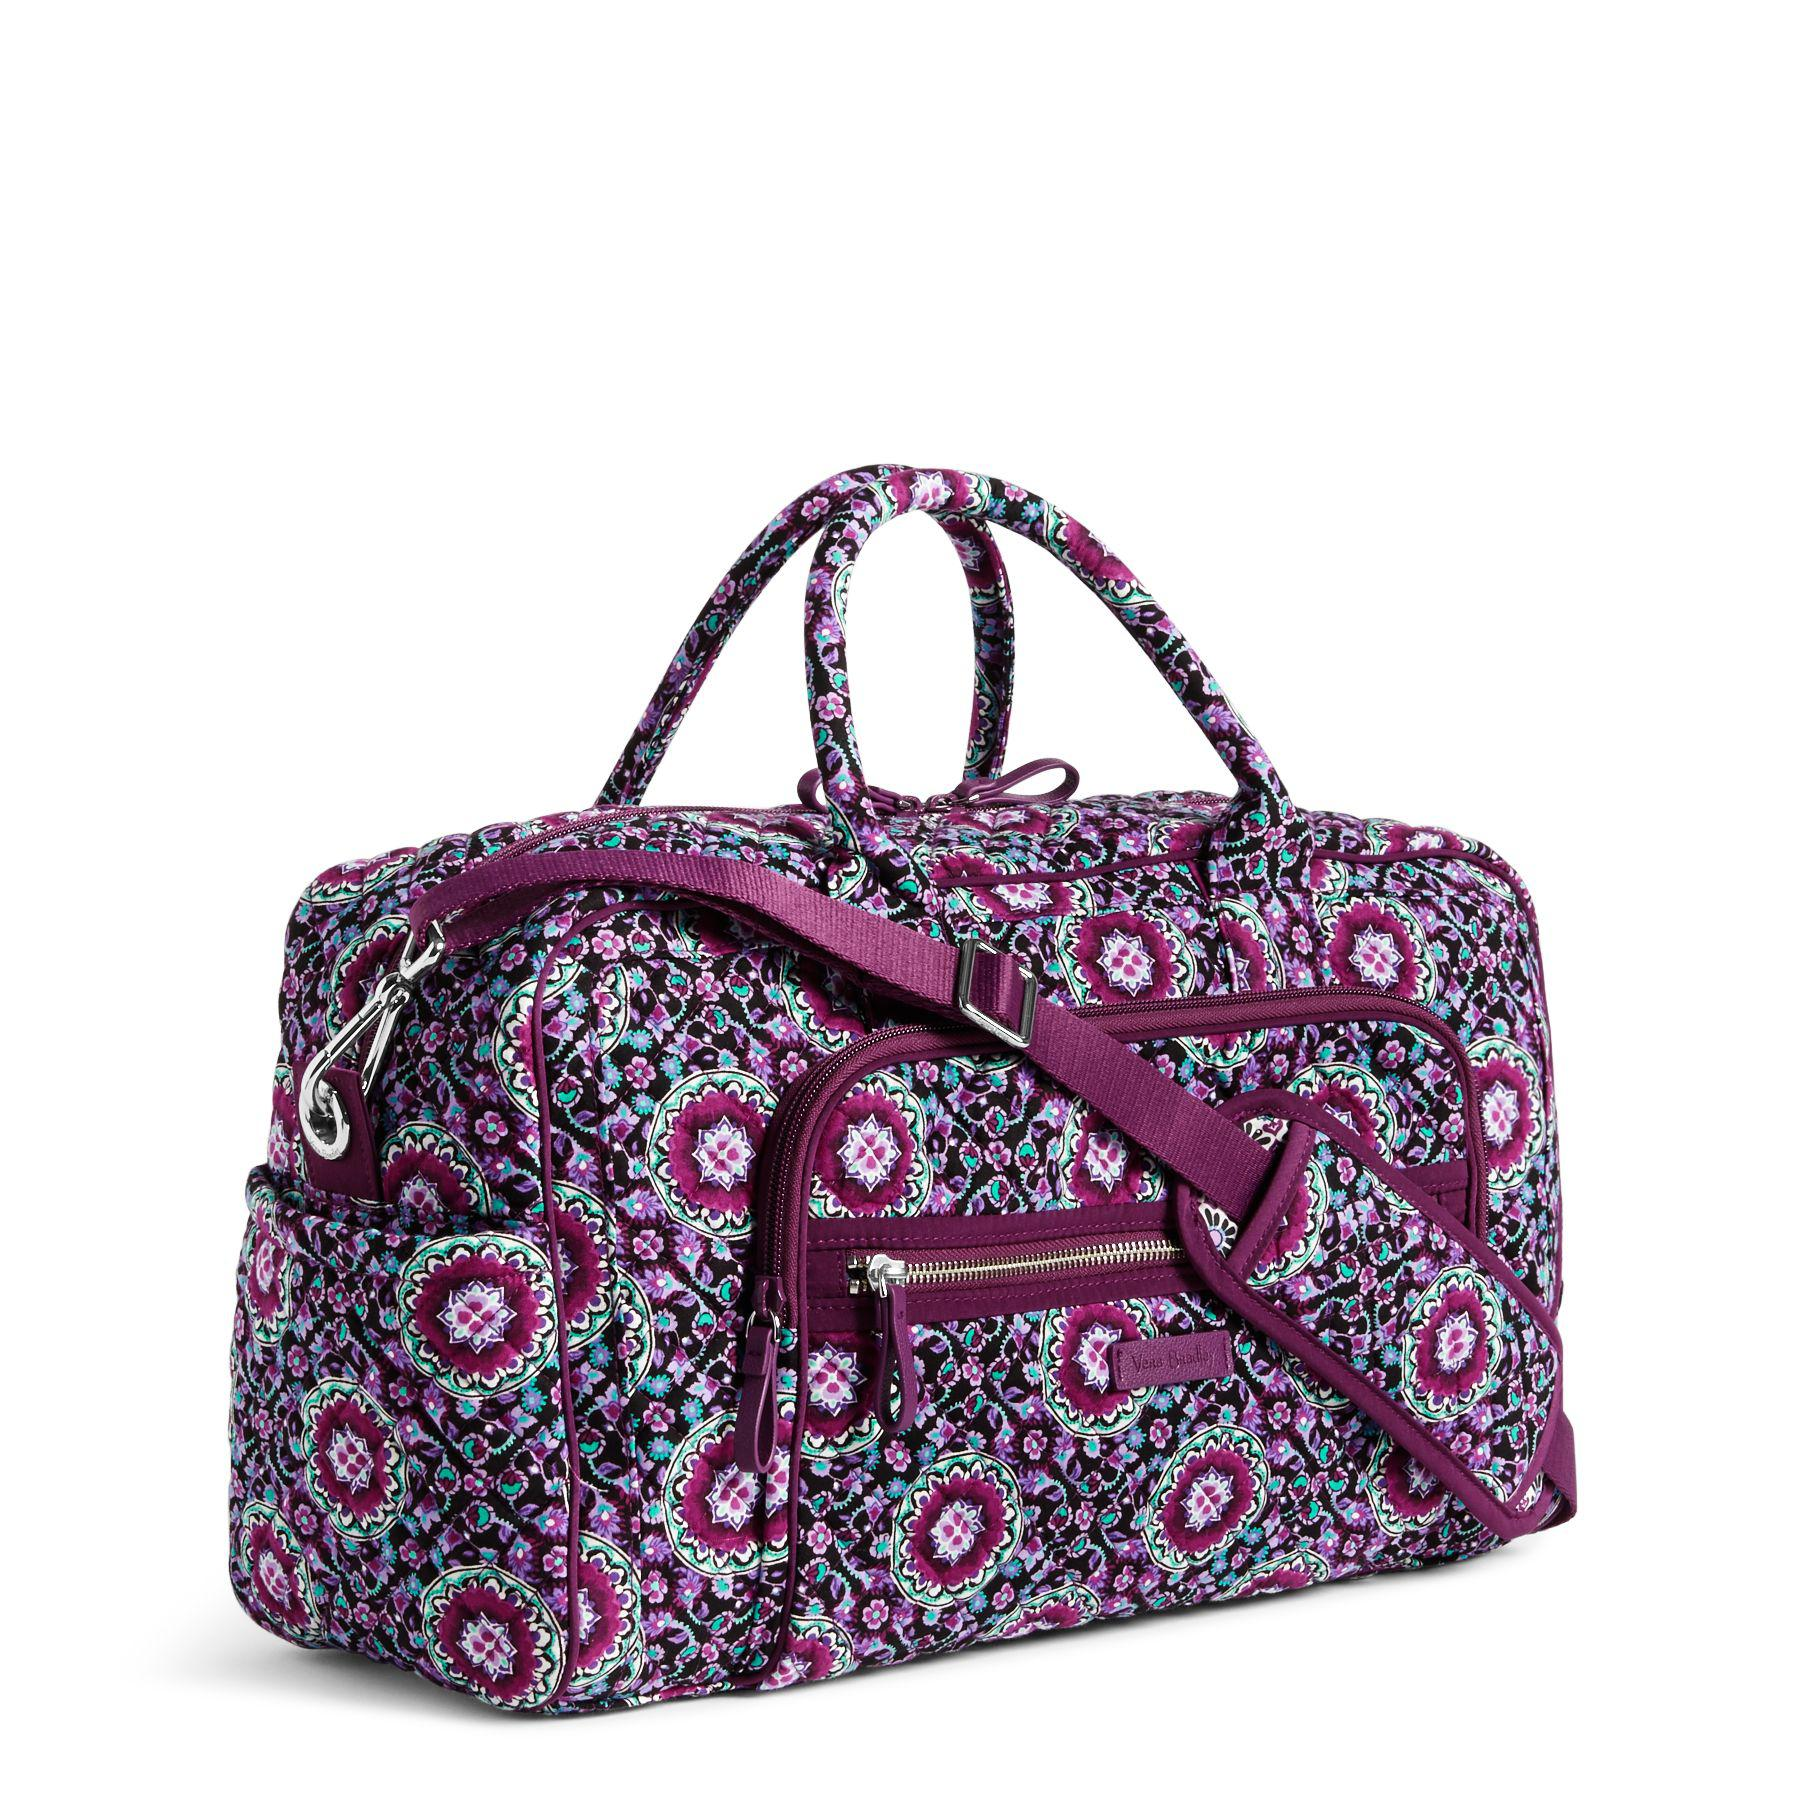 fa0a02fb5b Lyst - Vera Bradley Iconic Compact Weekender Travel Bag in Purple